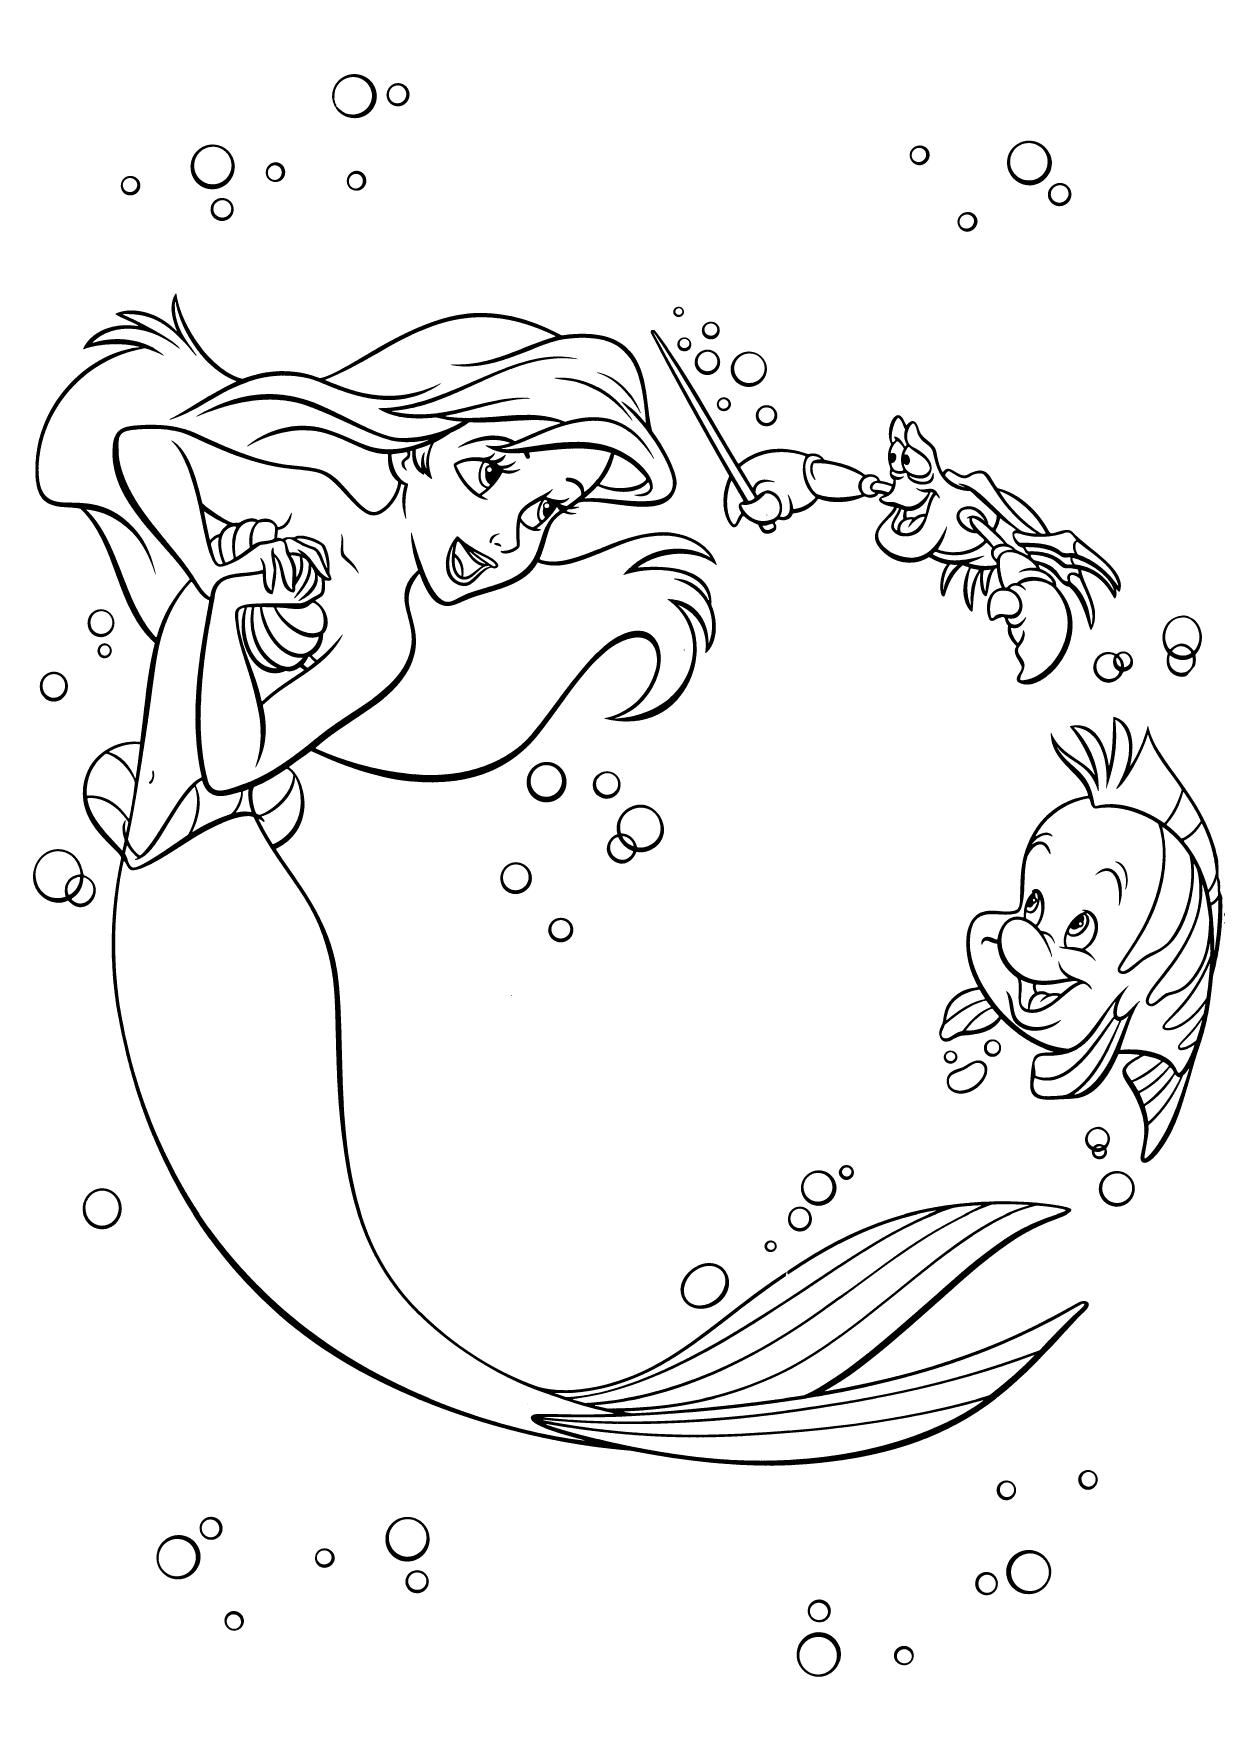 - Disney Coloring Book Pdf Mermaid Coloring Pages, Disney Princess